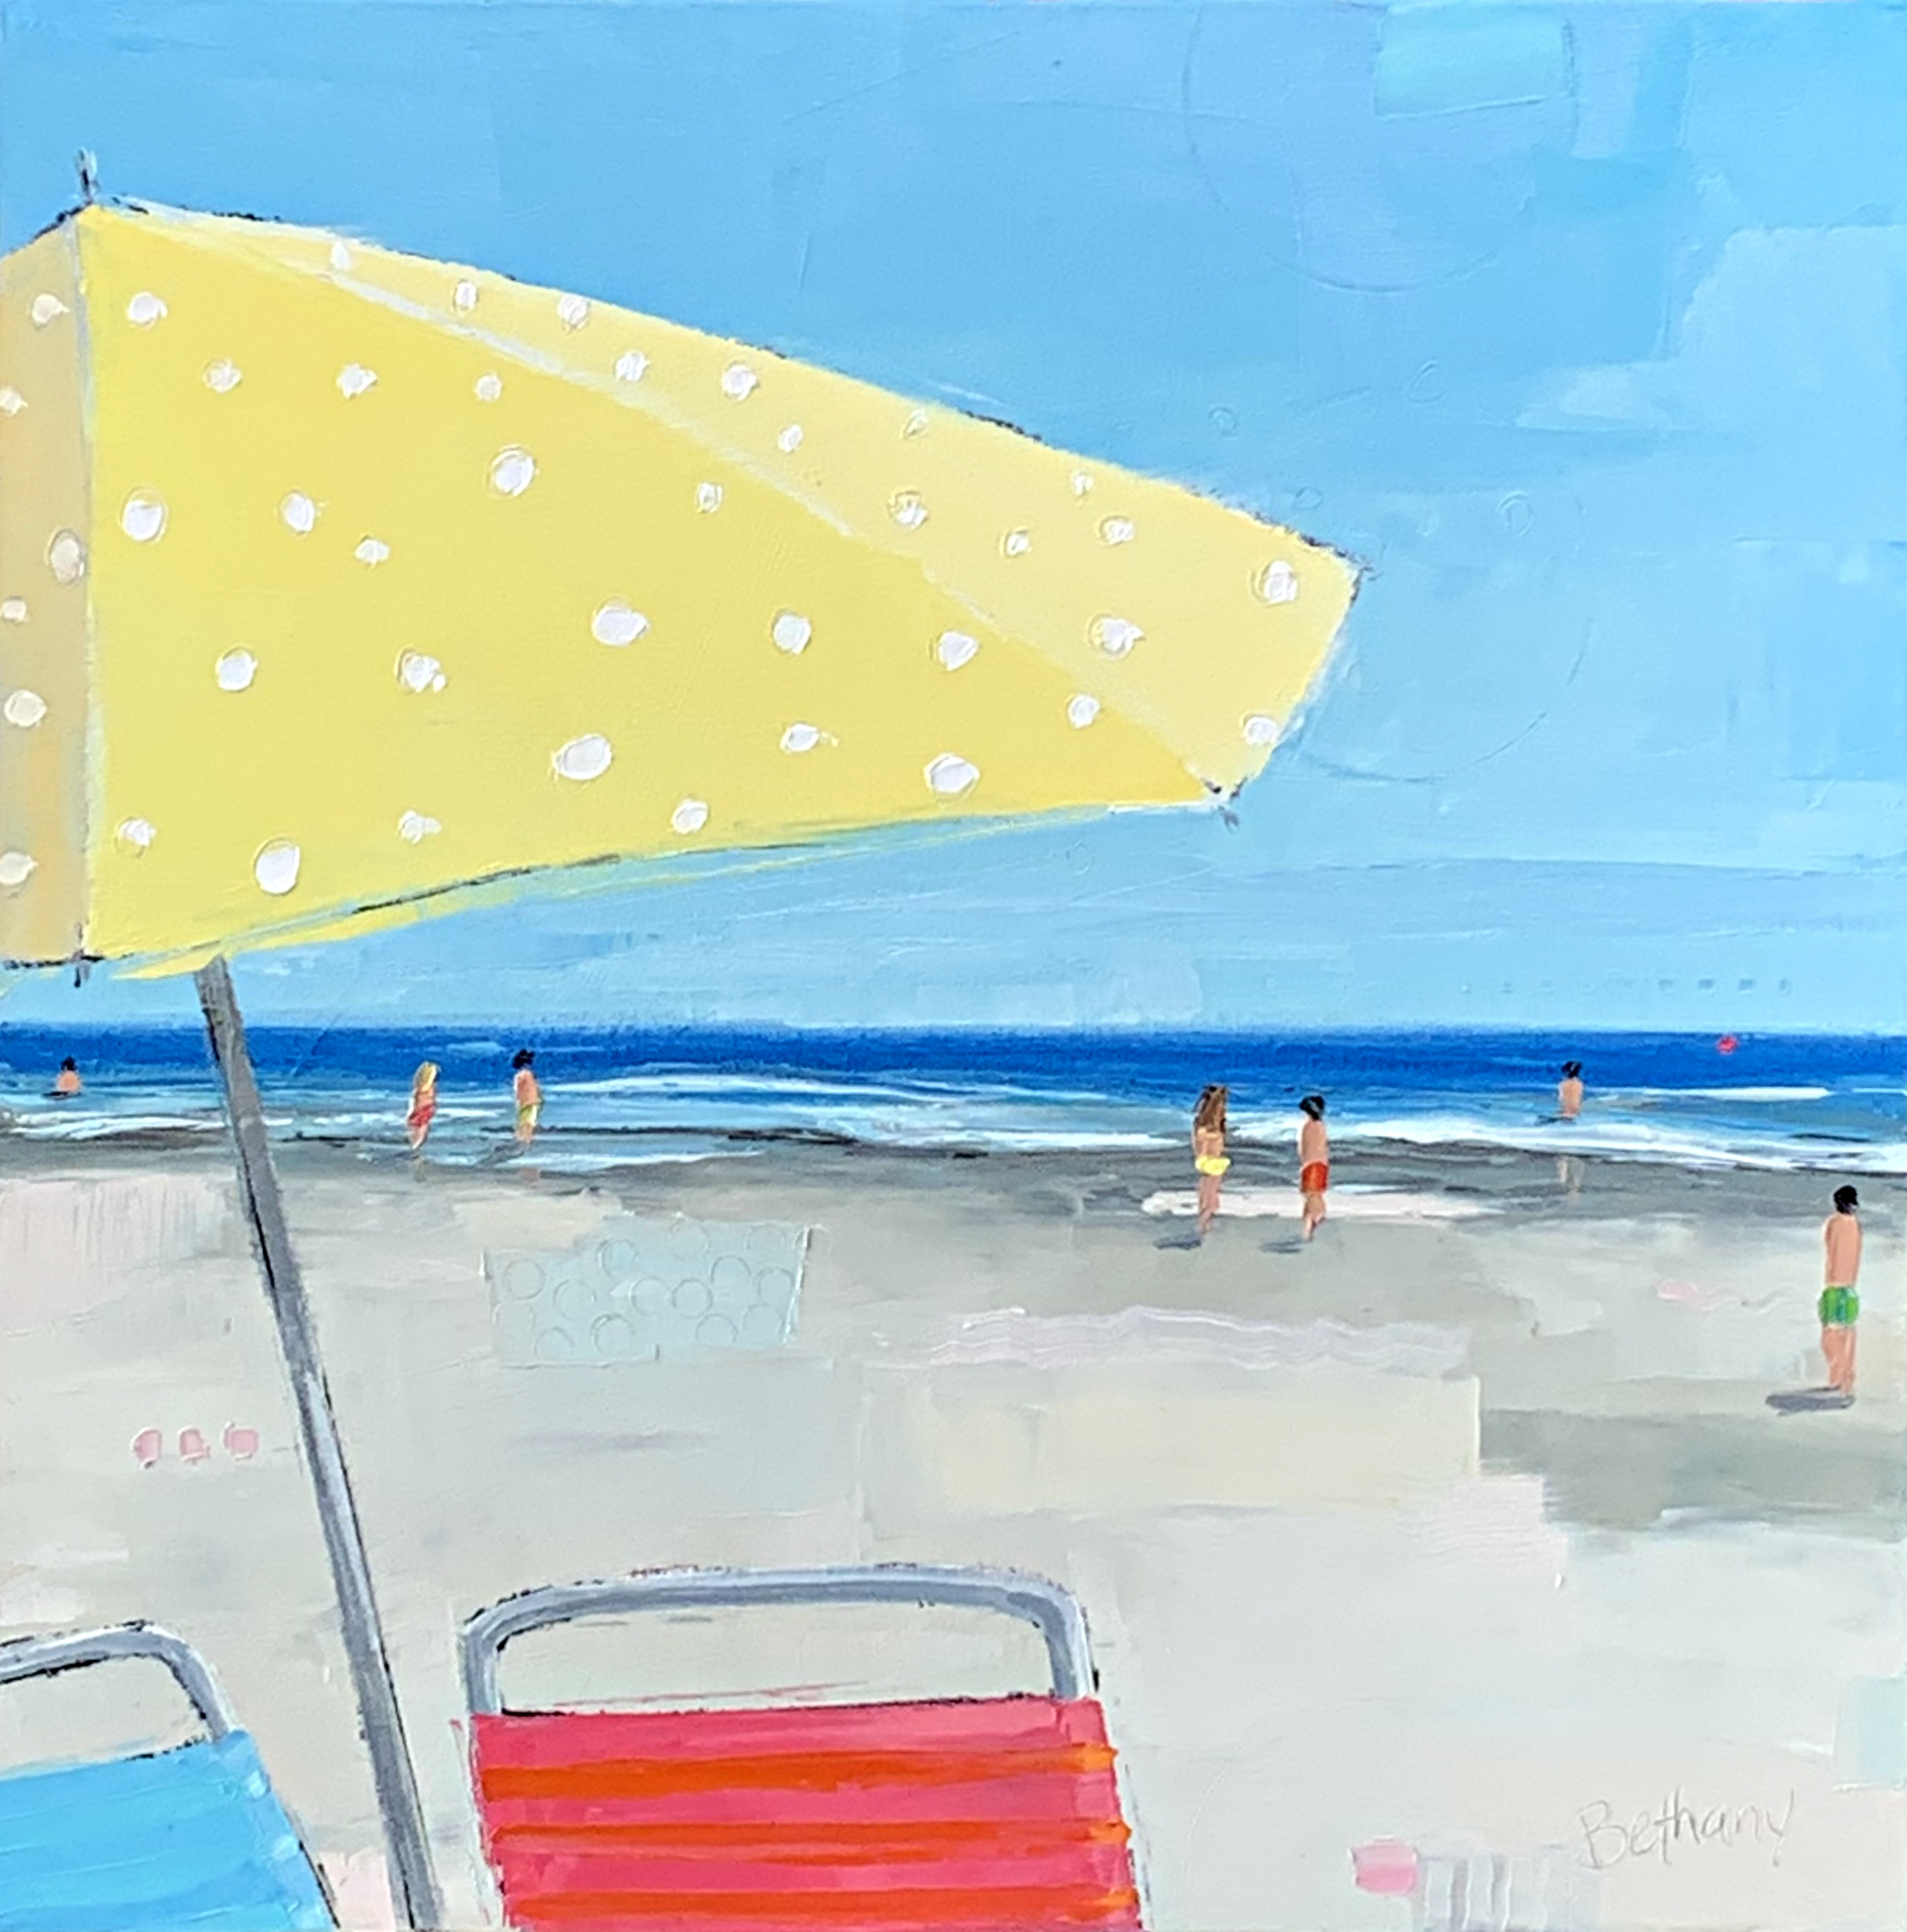 Yellow Polka Dot Umbrella, beach landscape painting by Bethany Harper Williams | Effusion Art Gallery + Glass Studio, Invermere BC